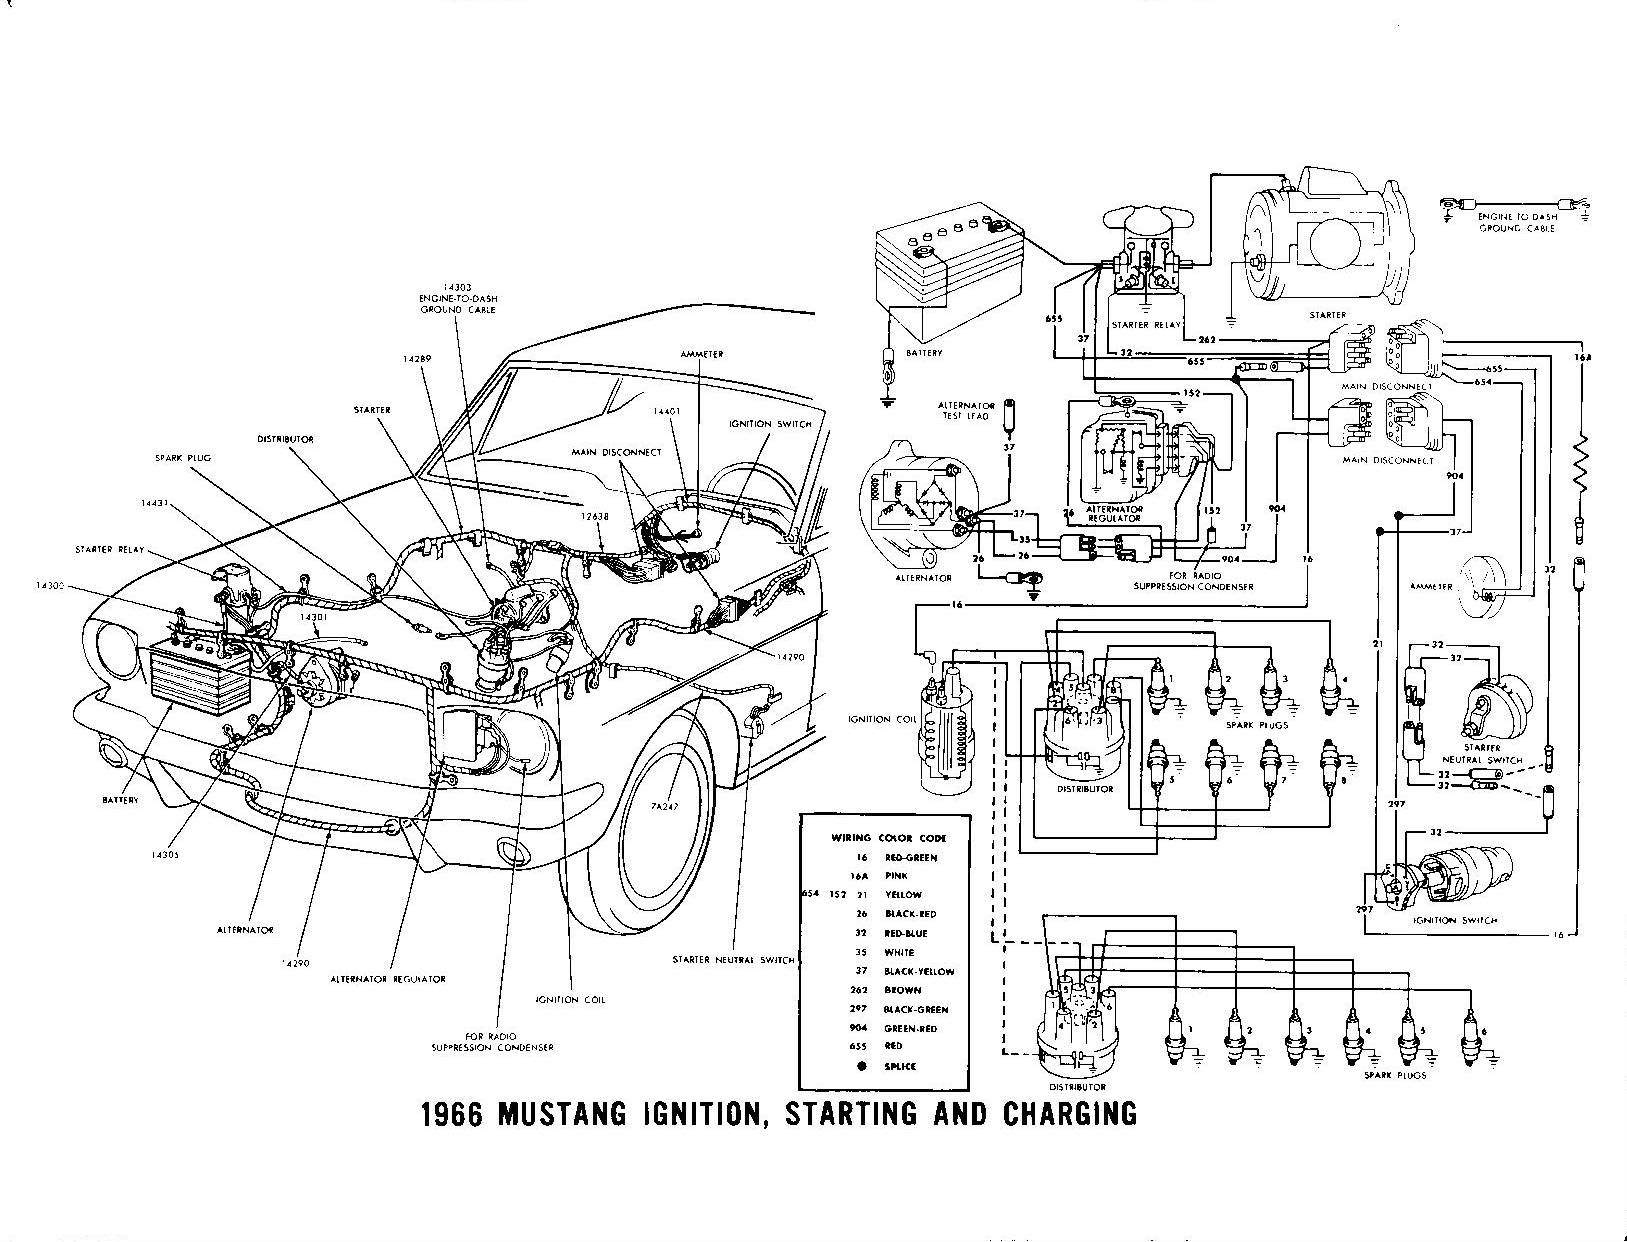 69 camaro wiring schematic for regulator yo 9019  1966 mustang voltage regulator wiring diagram  1966 mustang voltage regulator wiring